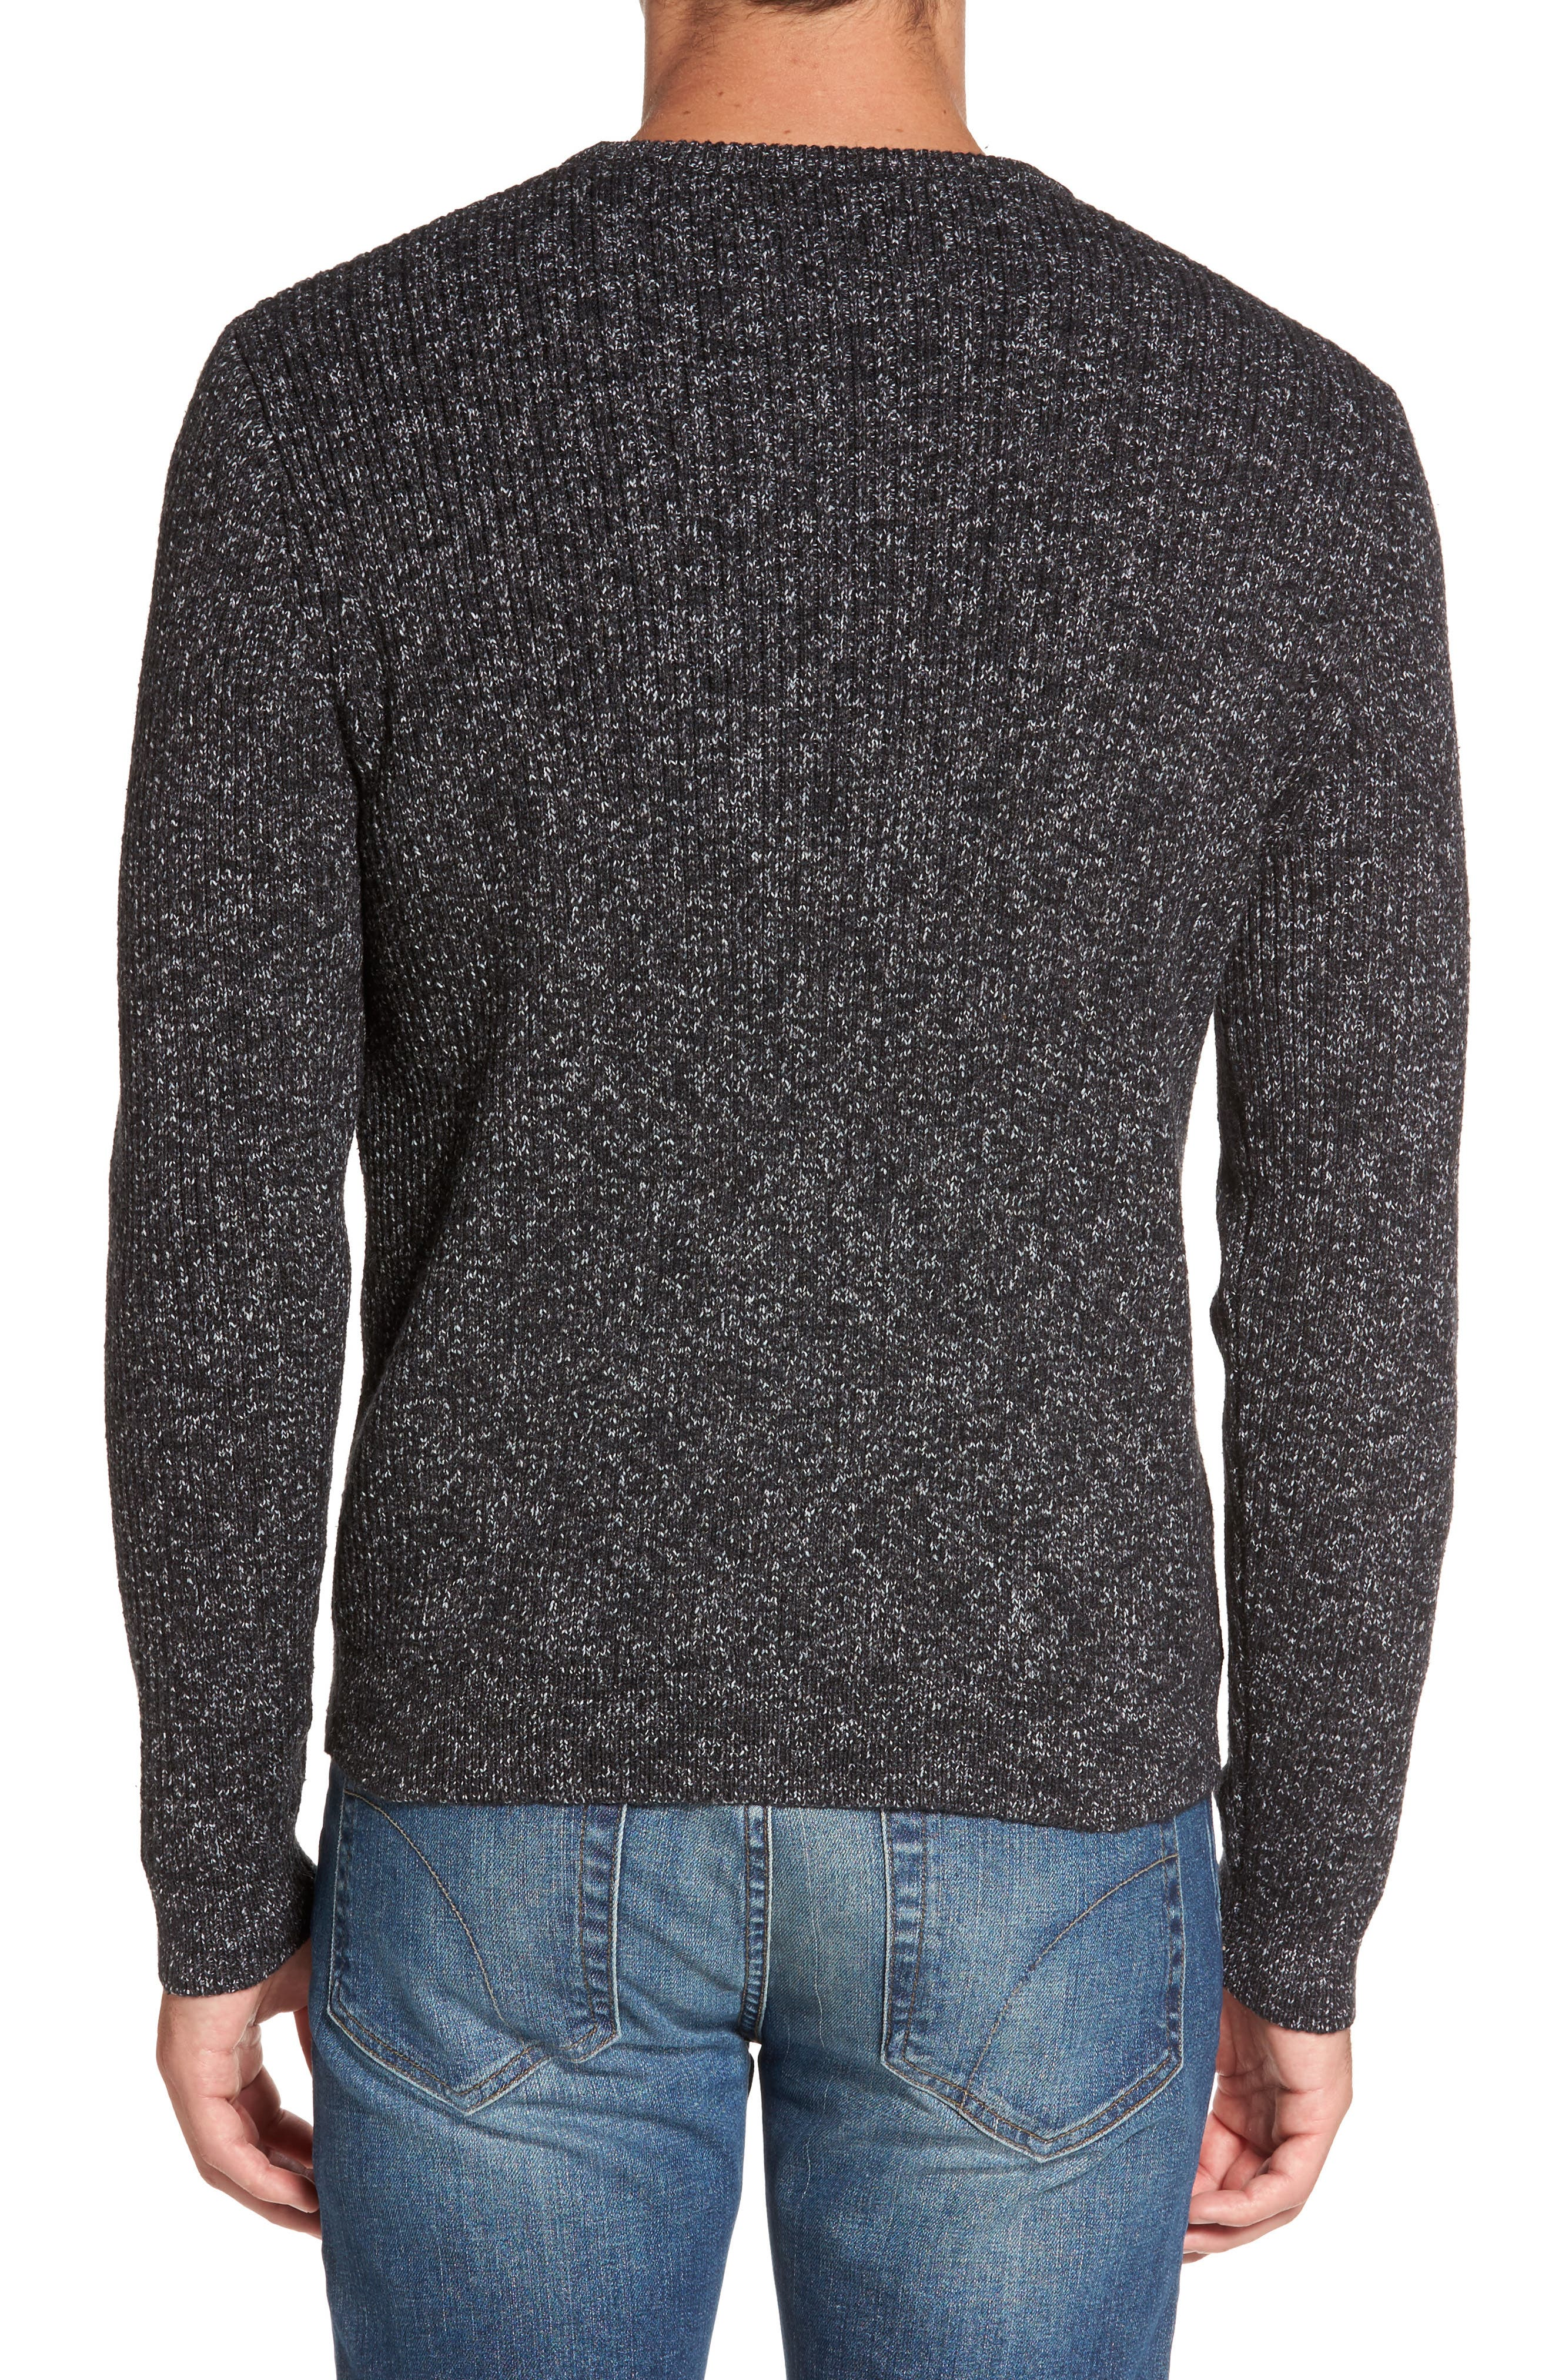 Donegal Space Dye Nep Sweater,                             Alternate thumbnail 2, color,                             Charcoal Donegal